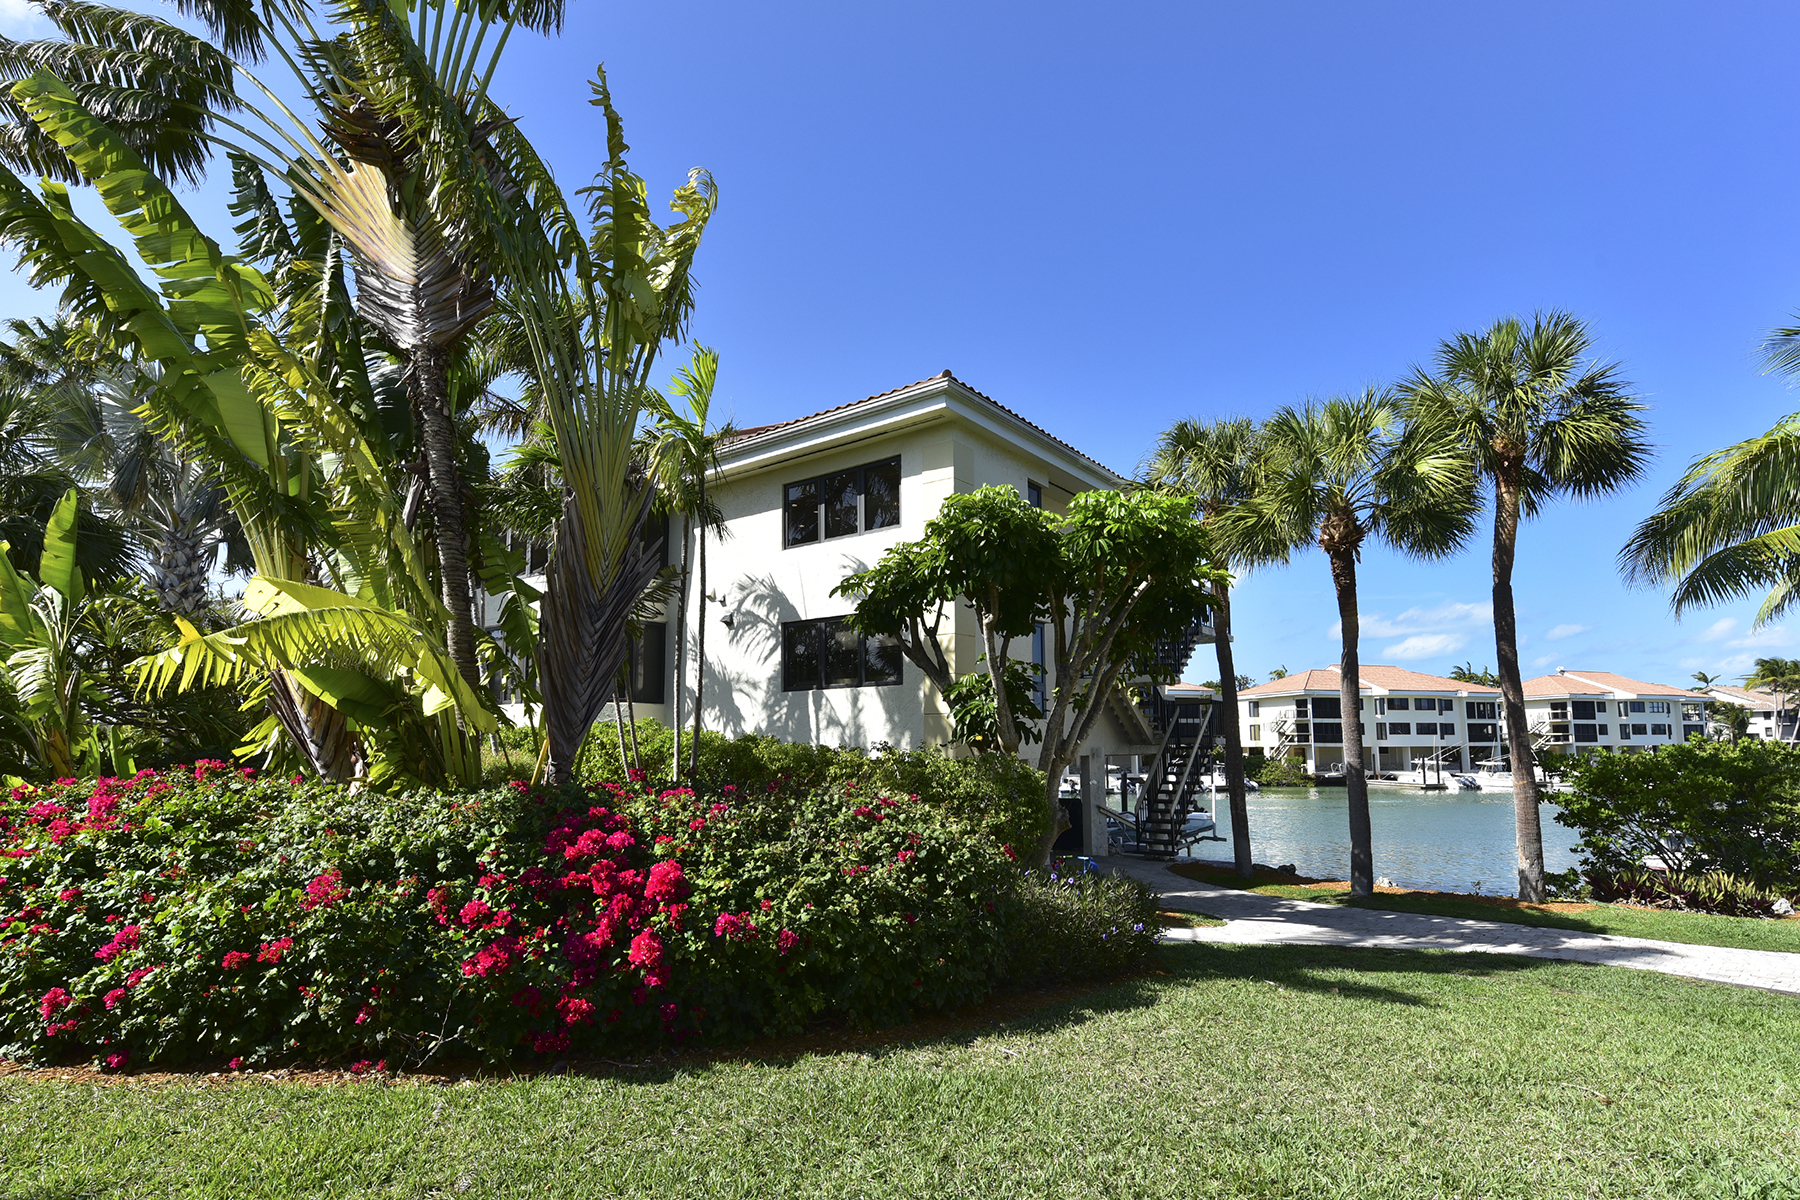 Additional photo for property listing at Fisherman's Cove Condominium at Ocean Reef 21 Fisherman's Cove, Unit B Key Largo, Флорида 33037 Соединенные Штаты